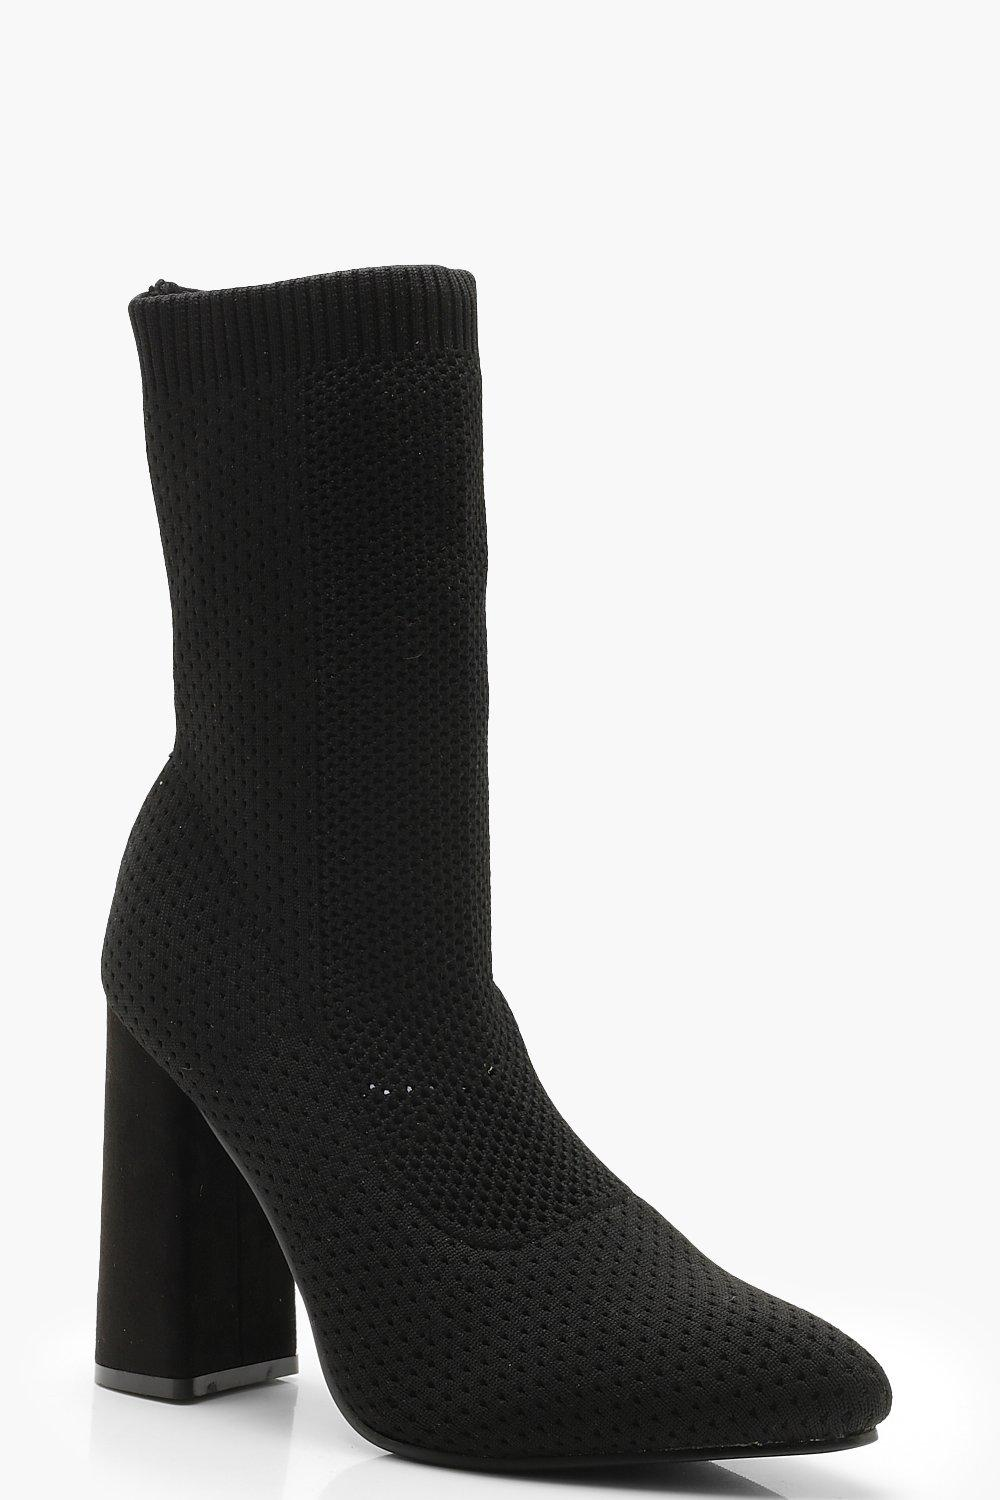 ae5ba7245a3 Womens Black Knitted Sock Boots. Hover to zoom